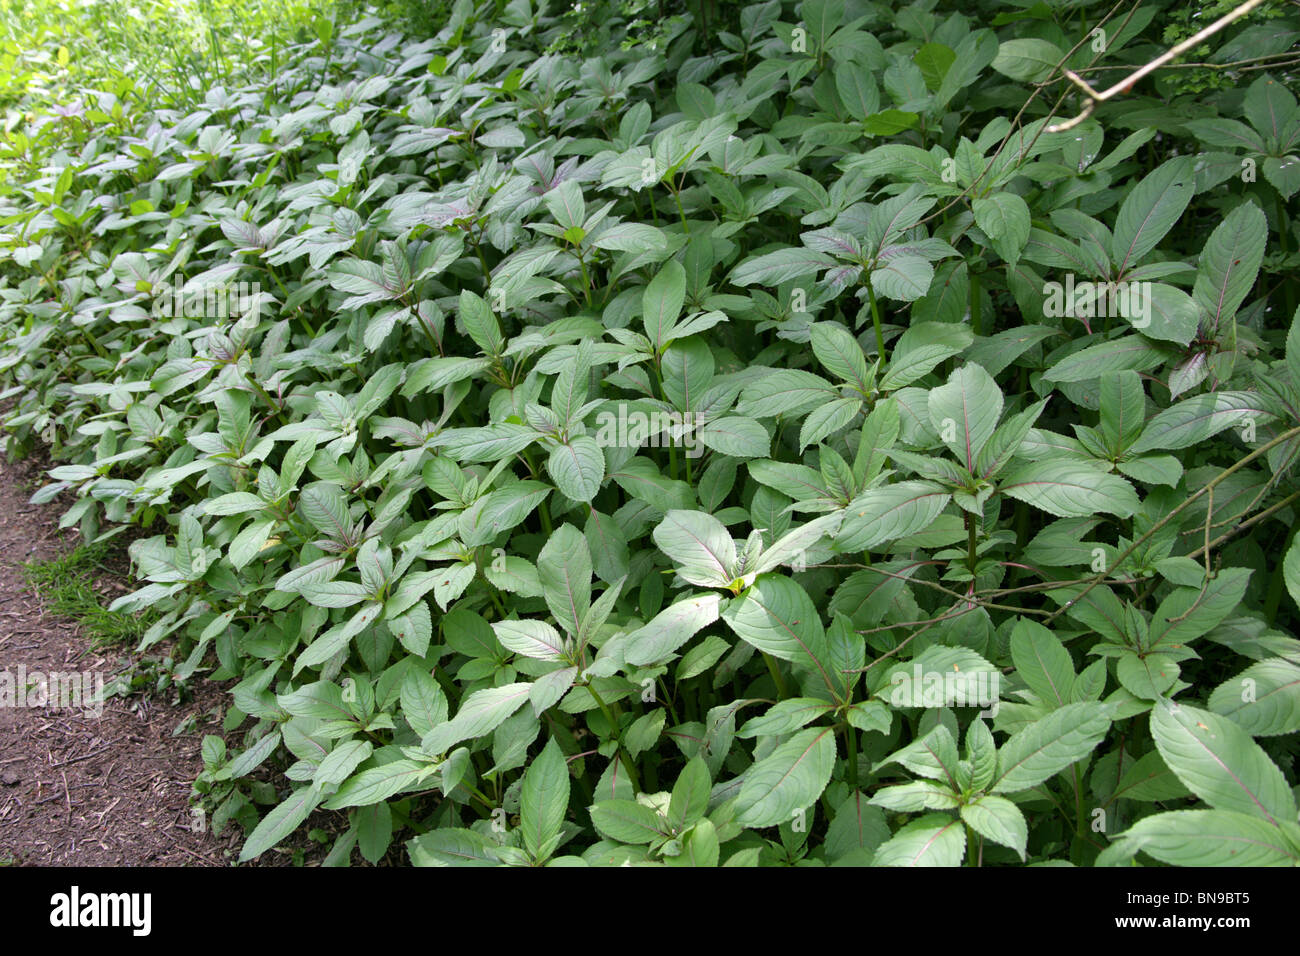 Himalayan Balsam, Impatiens glandulifera, Balsaminaceae. Young Plants in Spring Woodland. Aka Indian Balsam - Stock Image